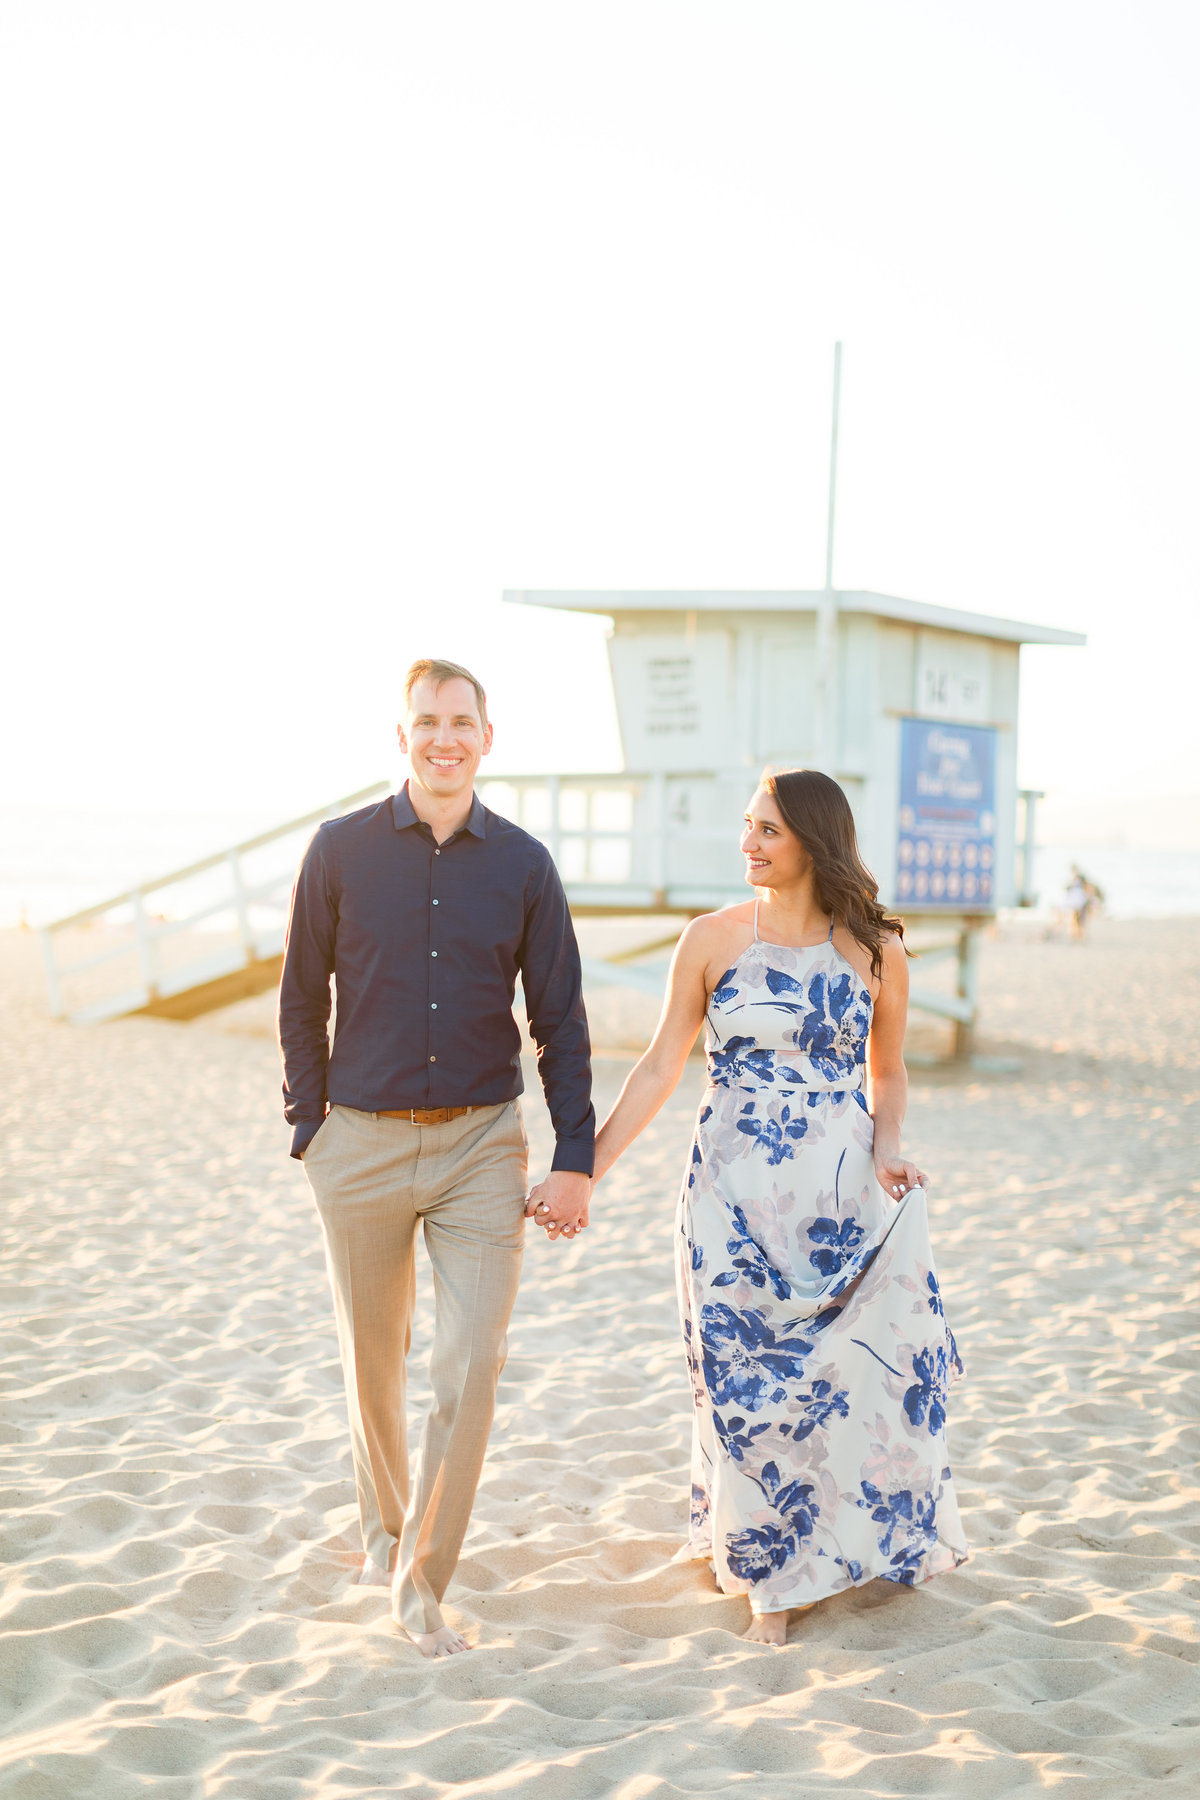 marius-megan-engagement-photos-katrina-jayne-photography-88